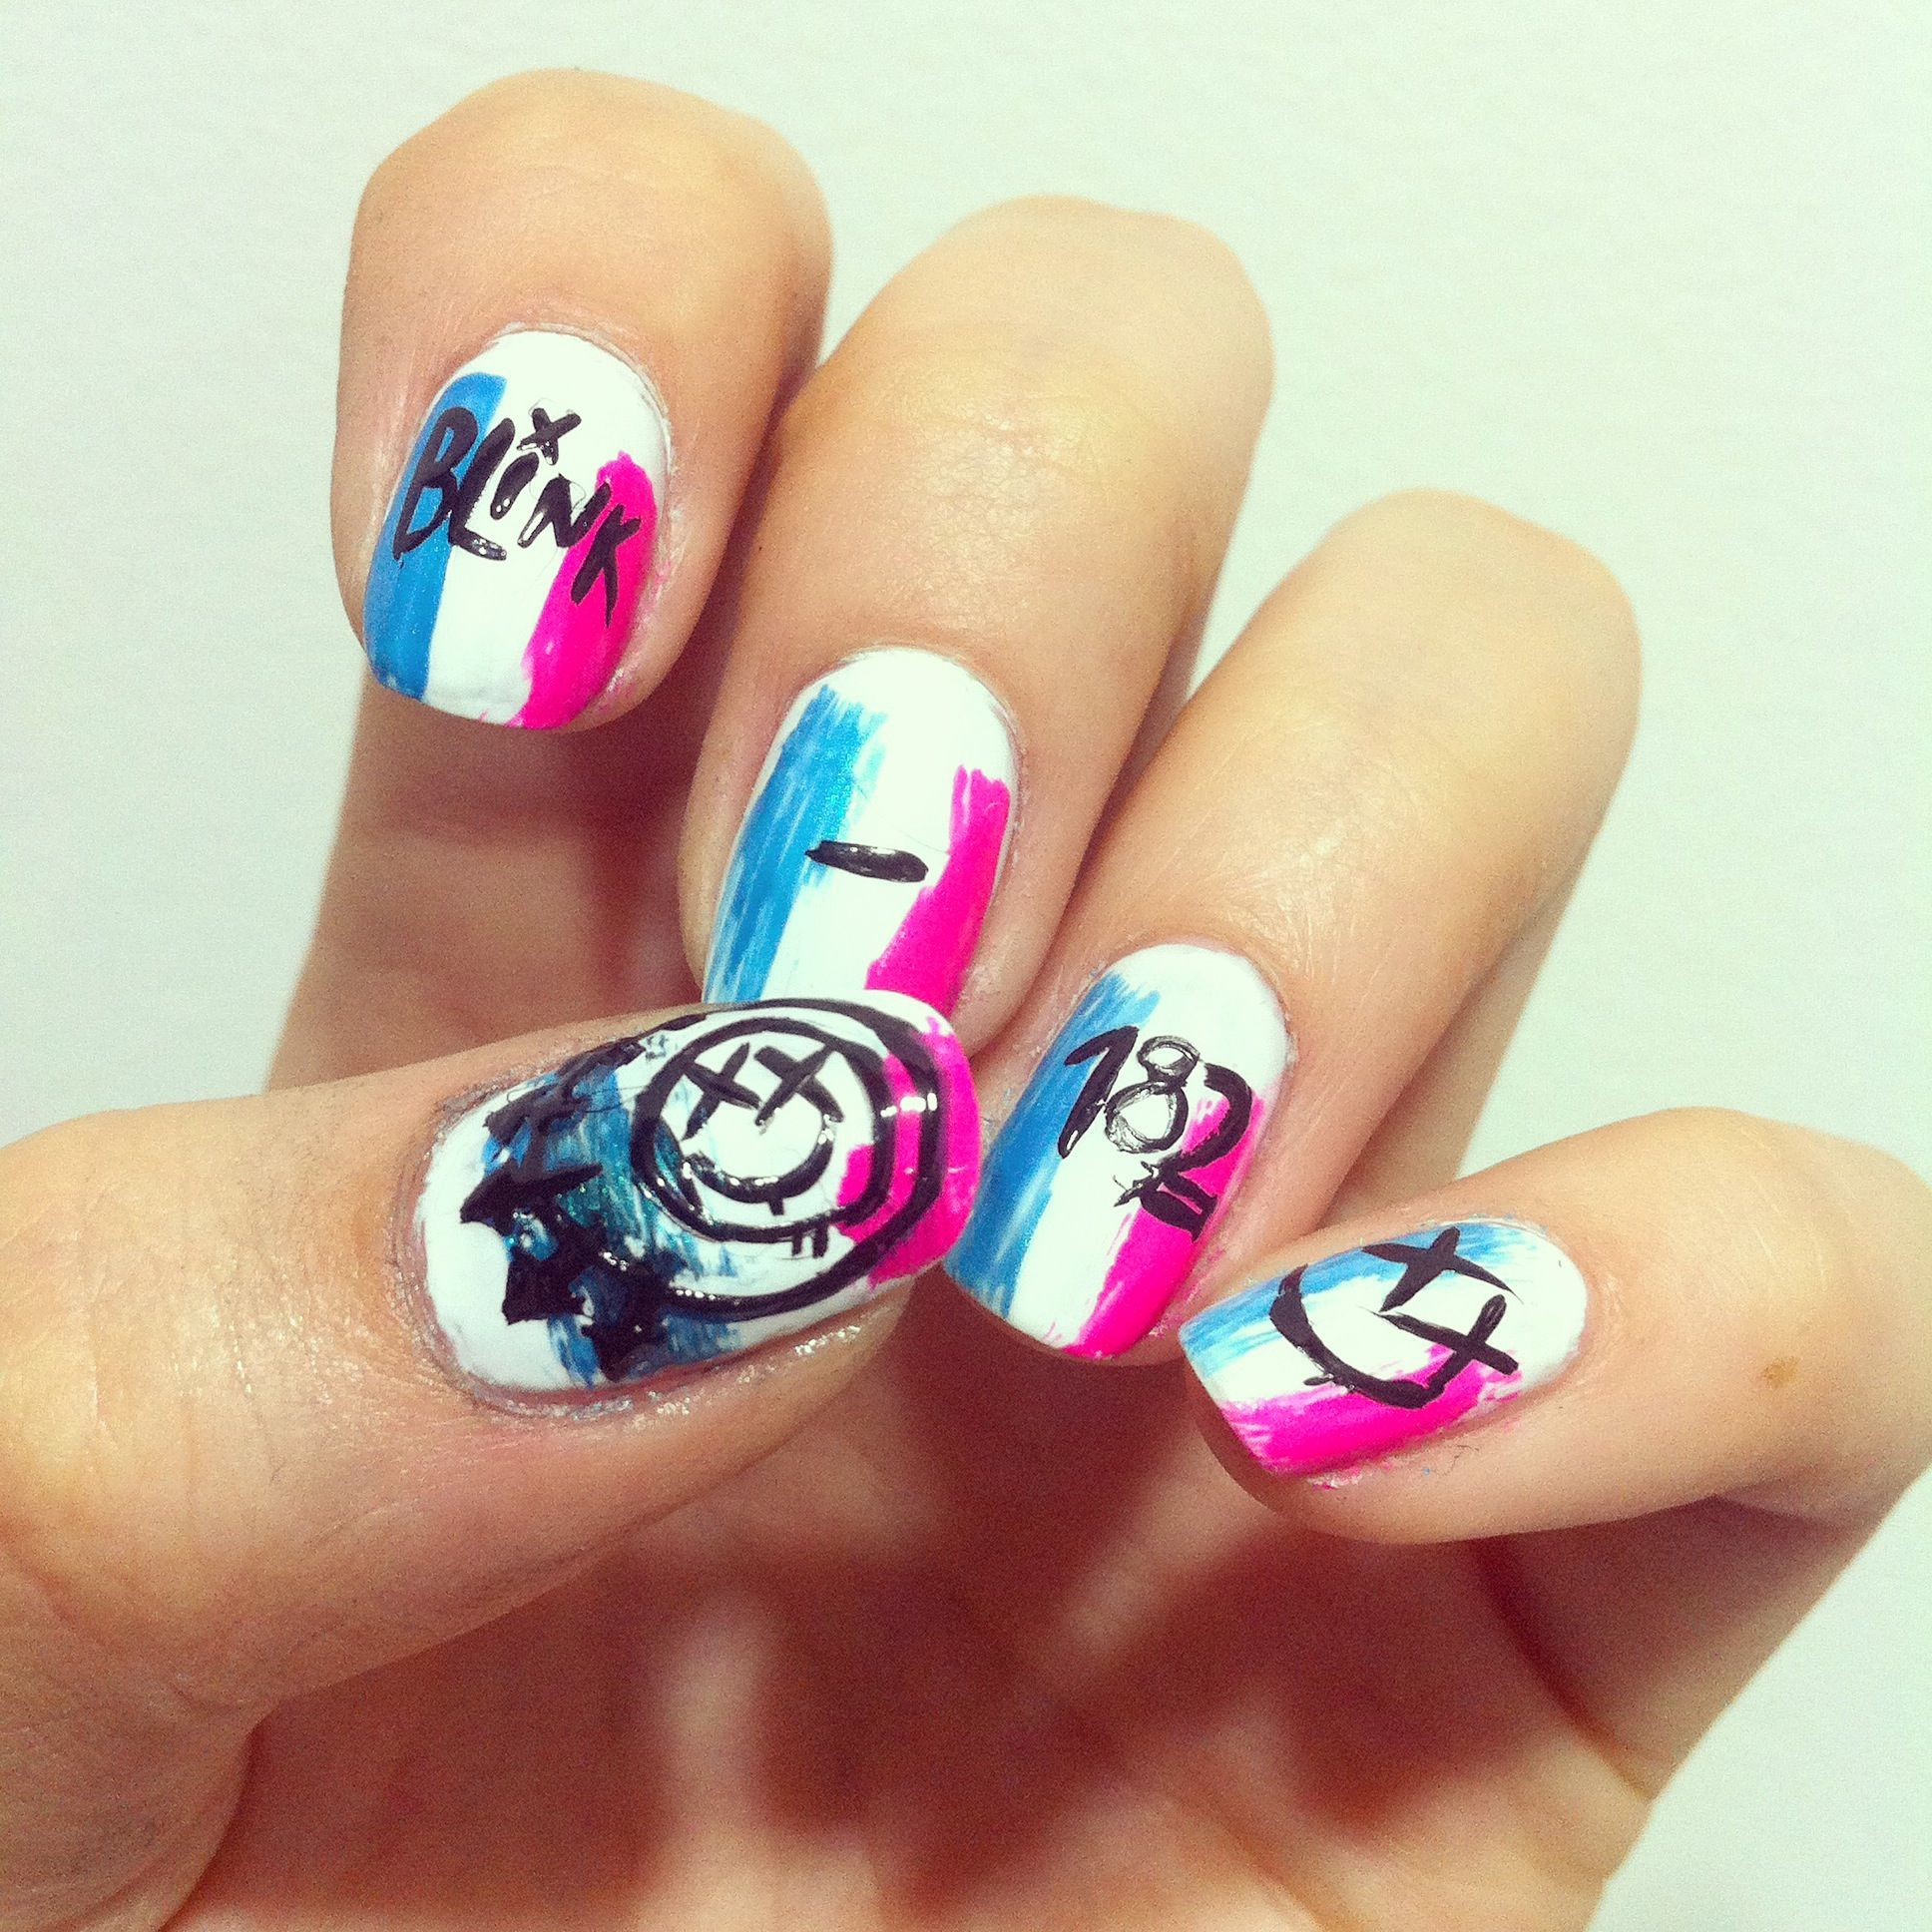 Nail Art Inspired By Famous Album Covers Fingernail Fun